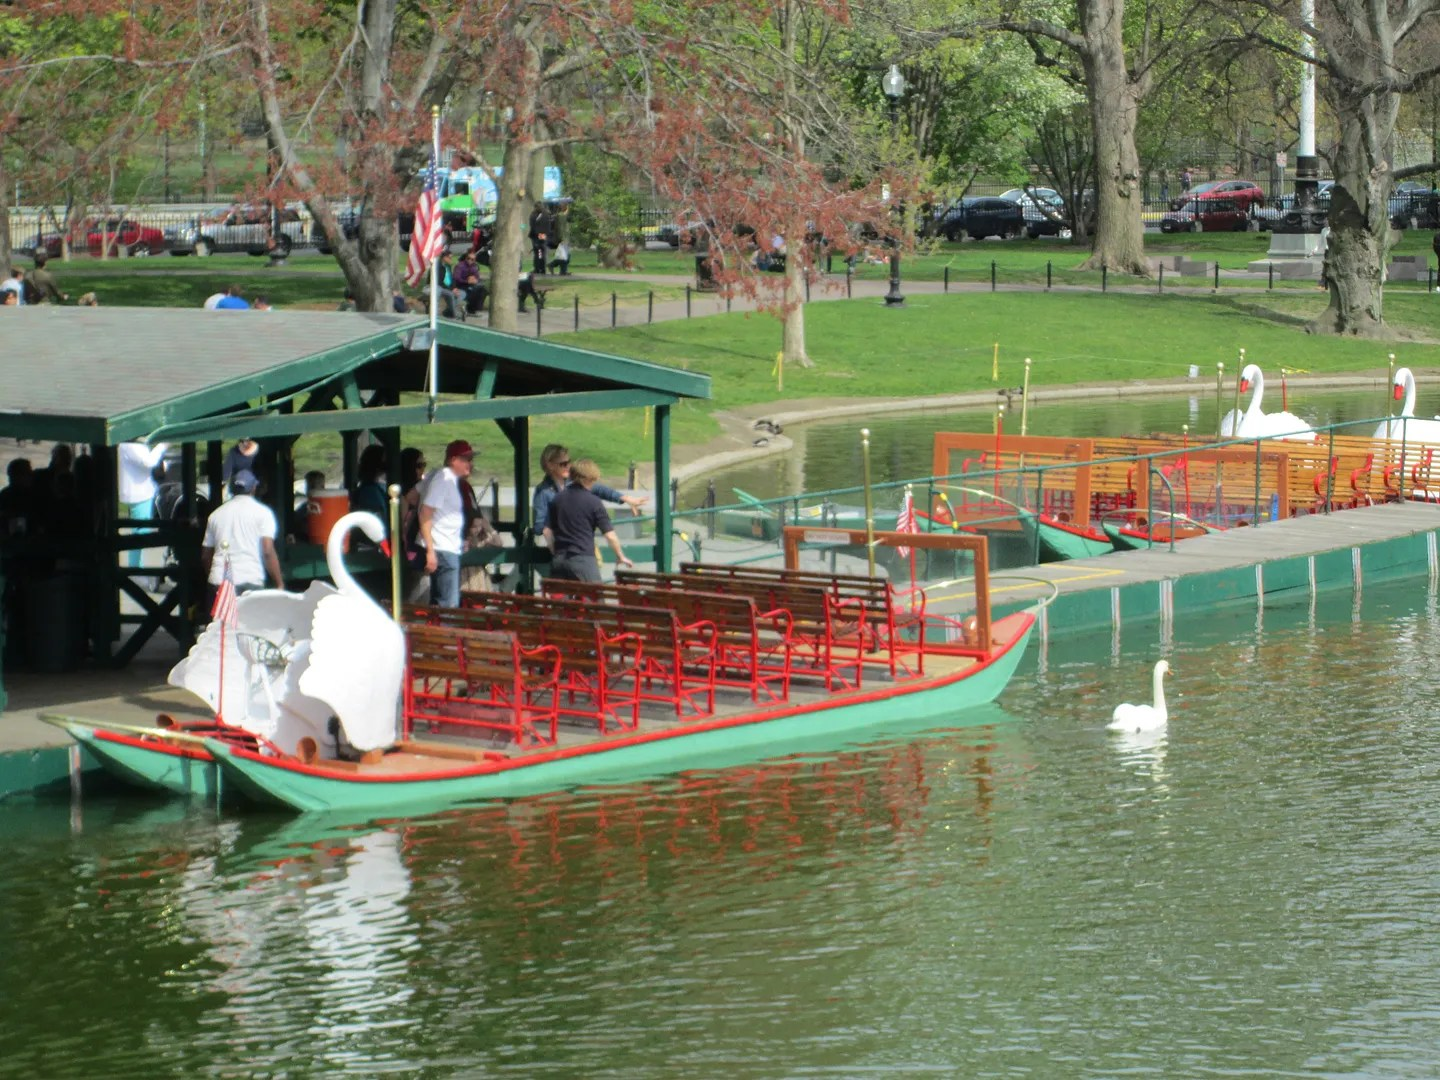 swan swimming alongside swan boat in boston public garden